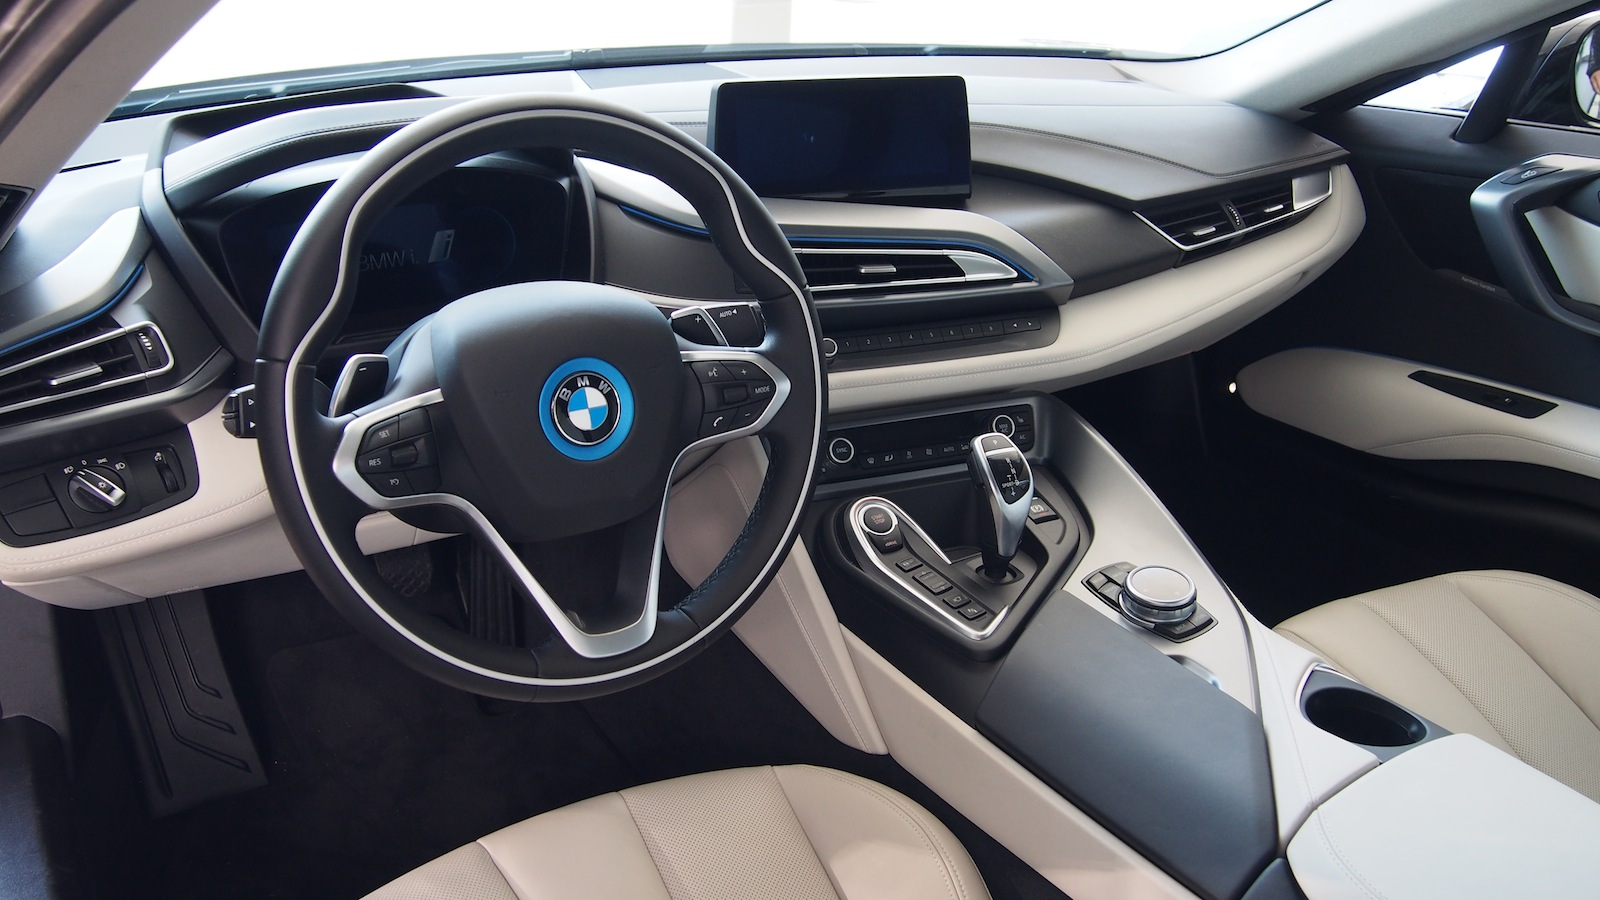 2015 BMW i8 Quick Look and Facts - Cars, Photos, Test Drives, and Reviews | Canadian Auto Review